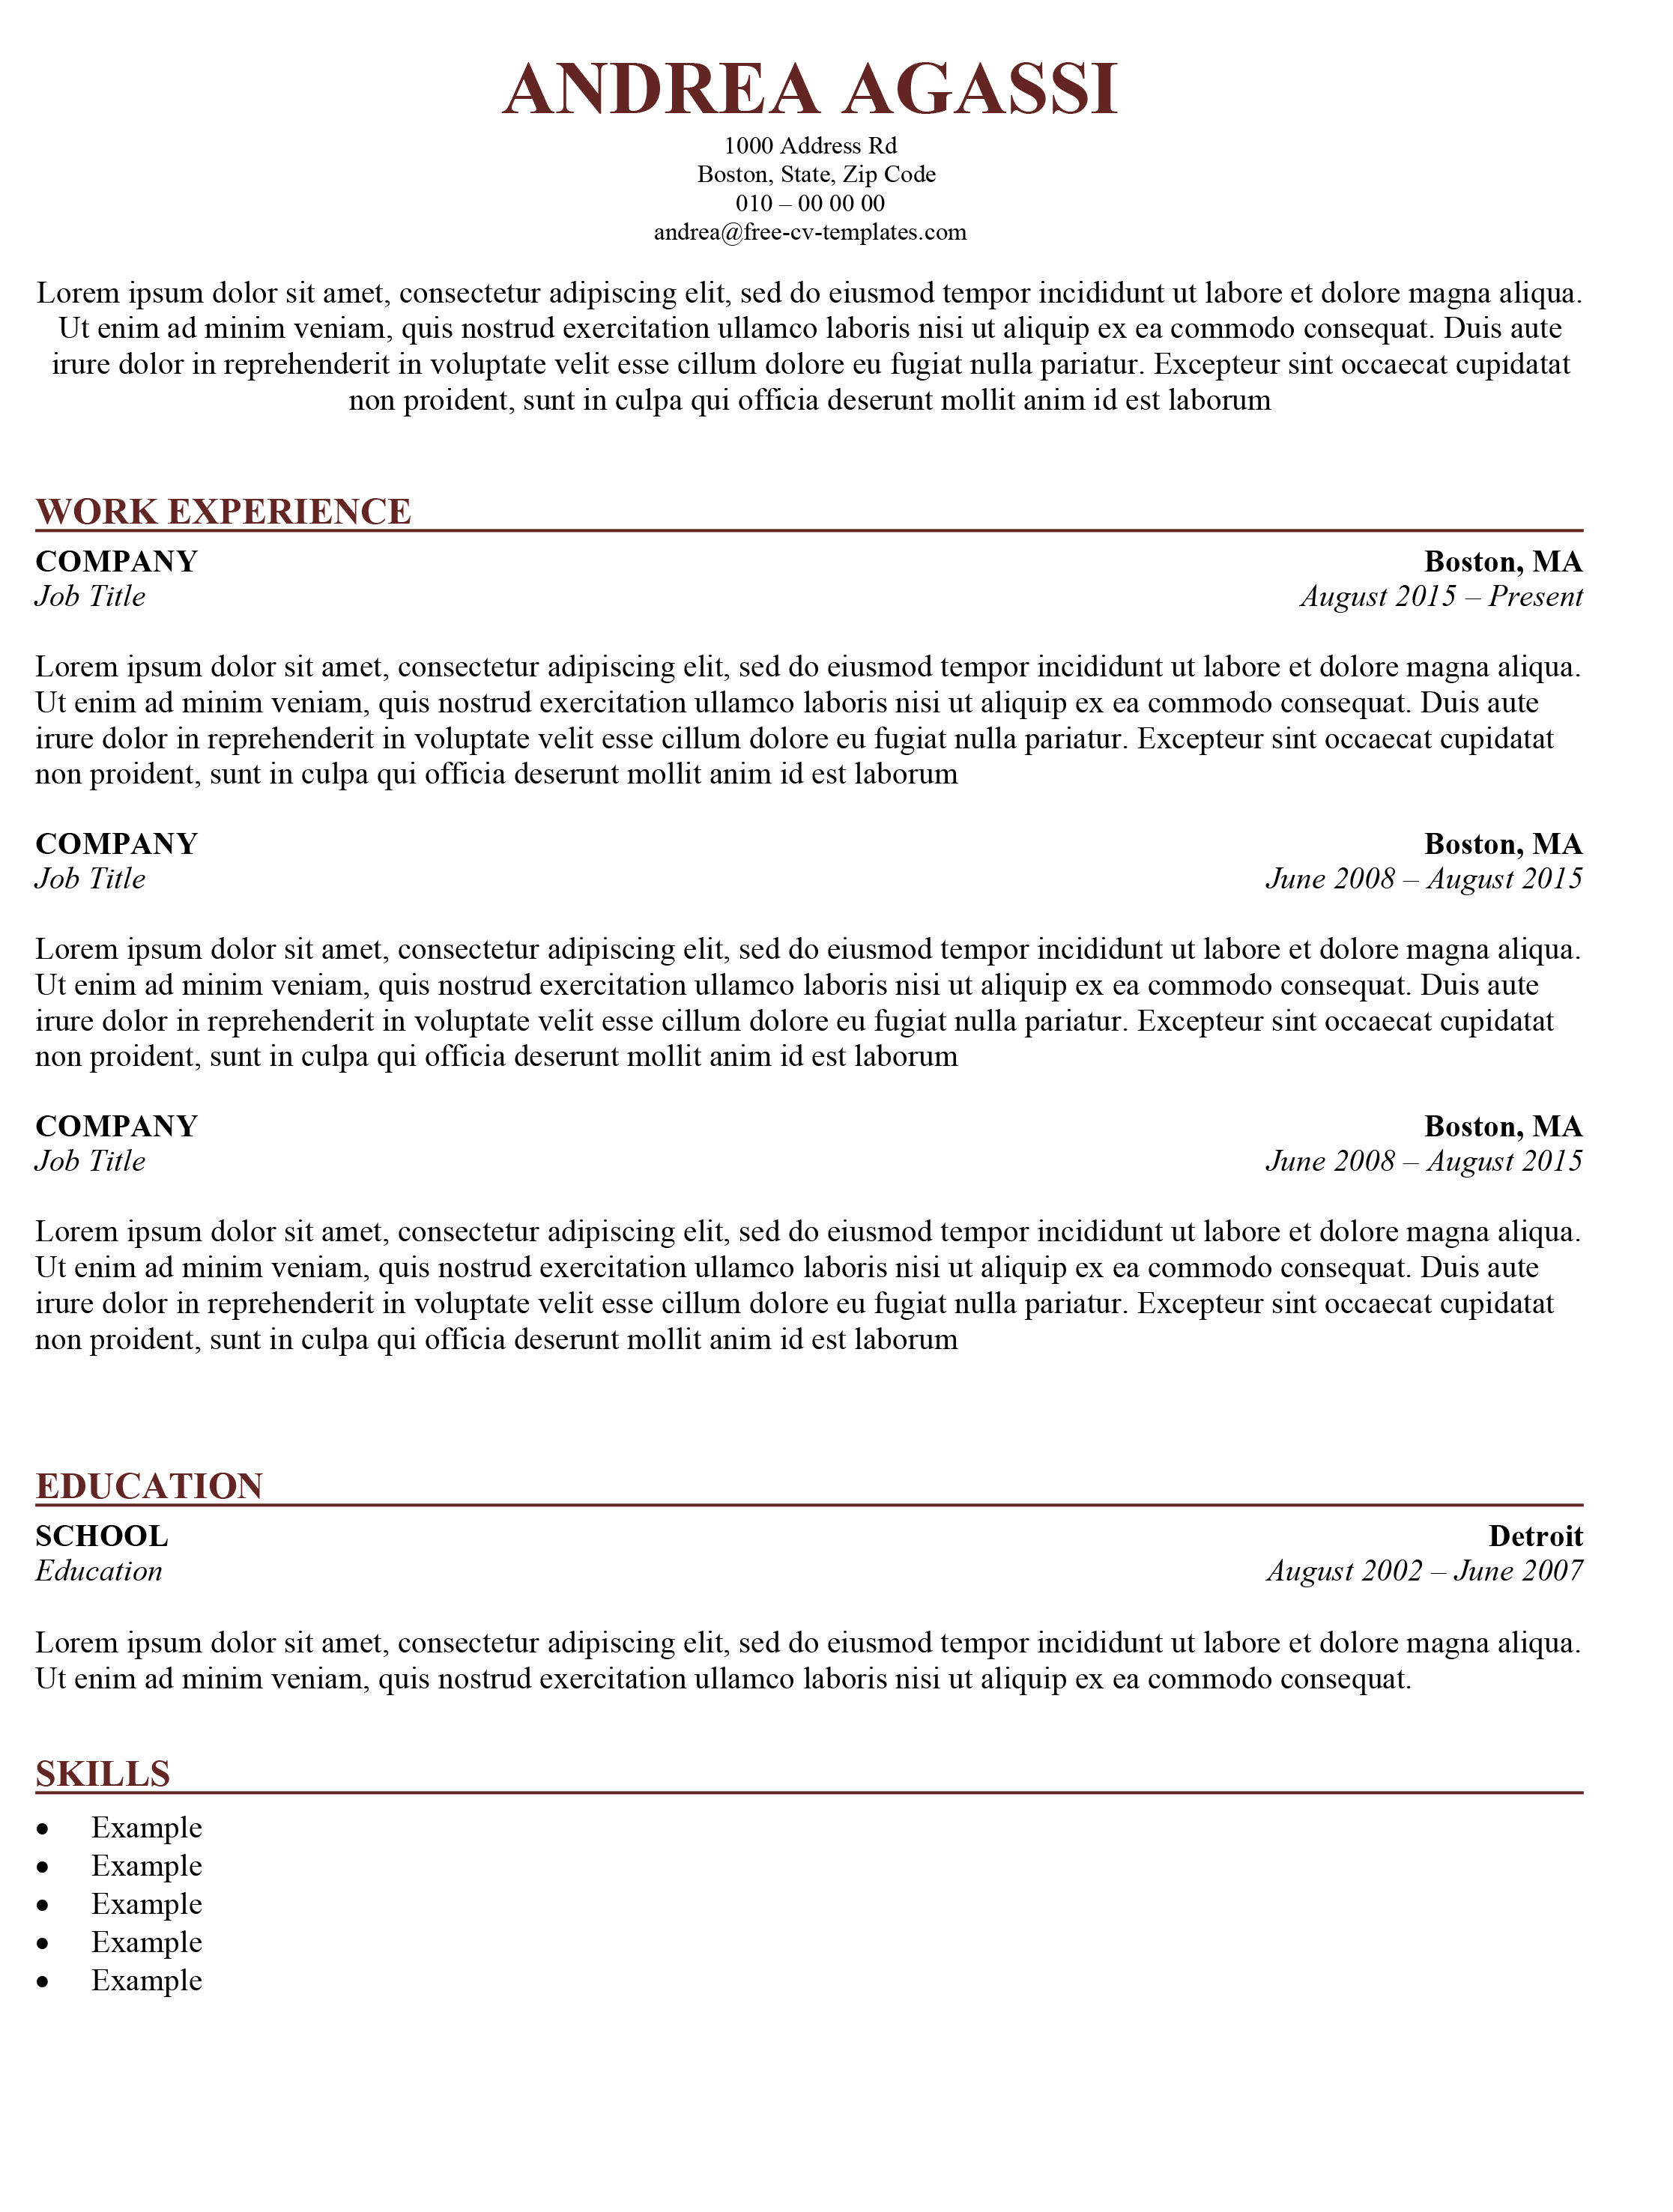 Traditional Cv Templates Land The Job With Our Free Word